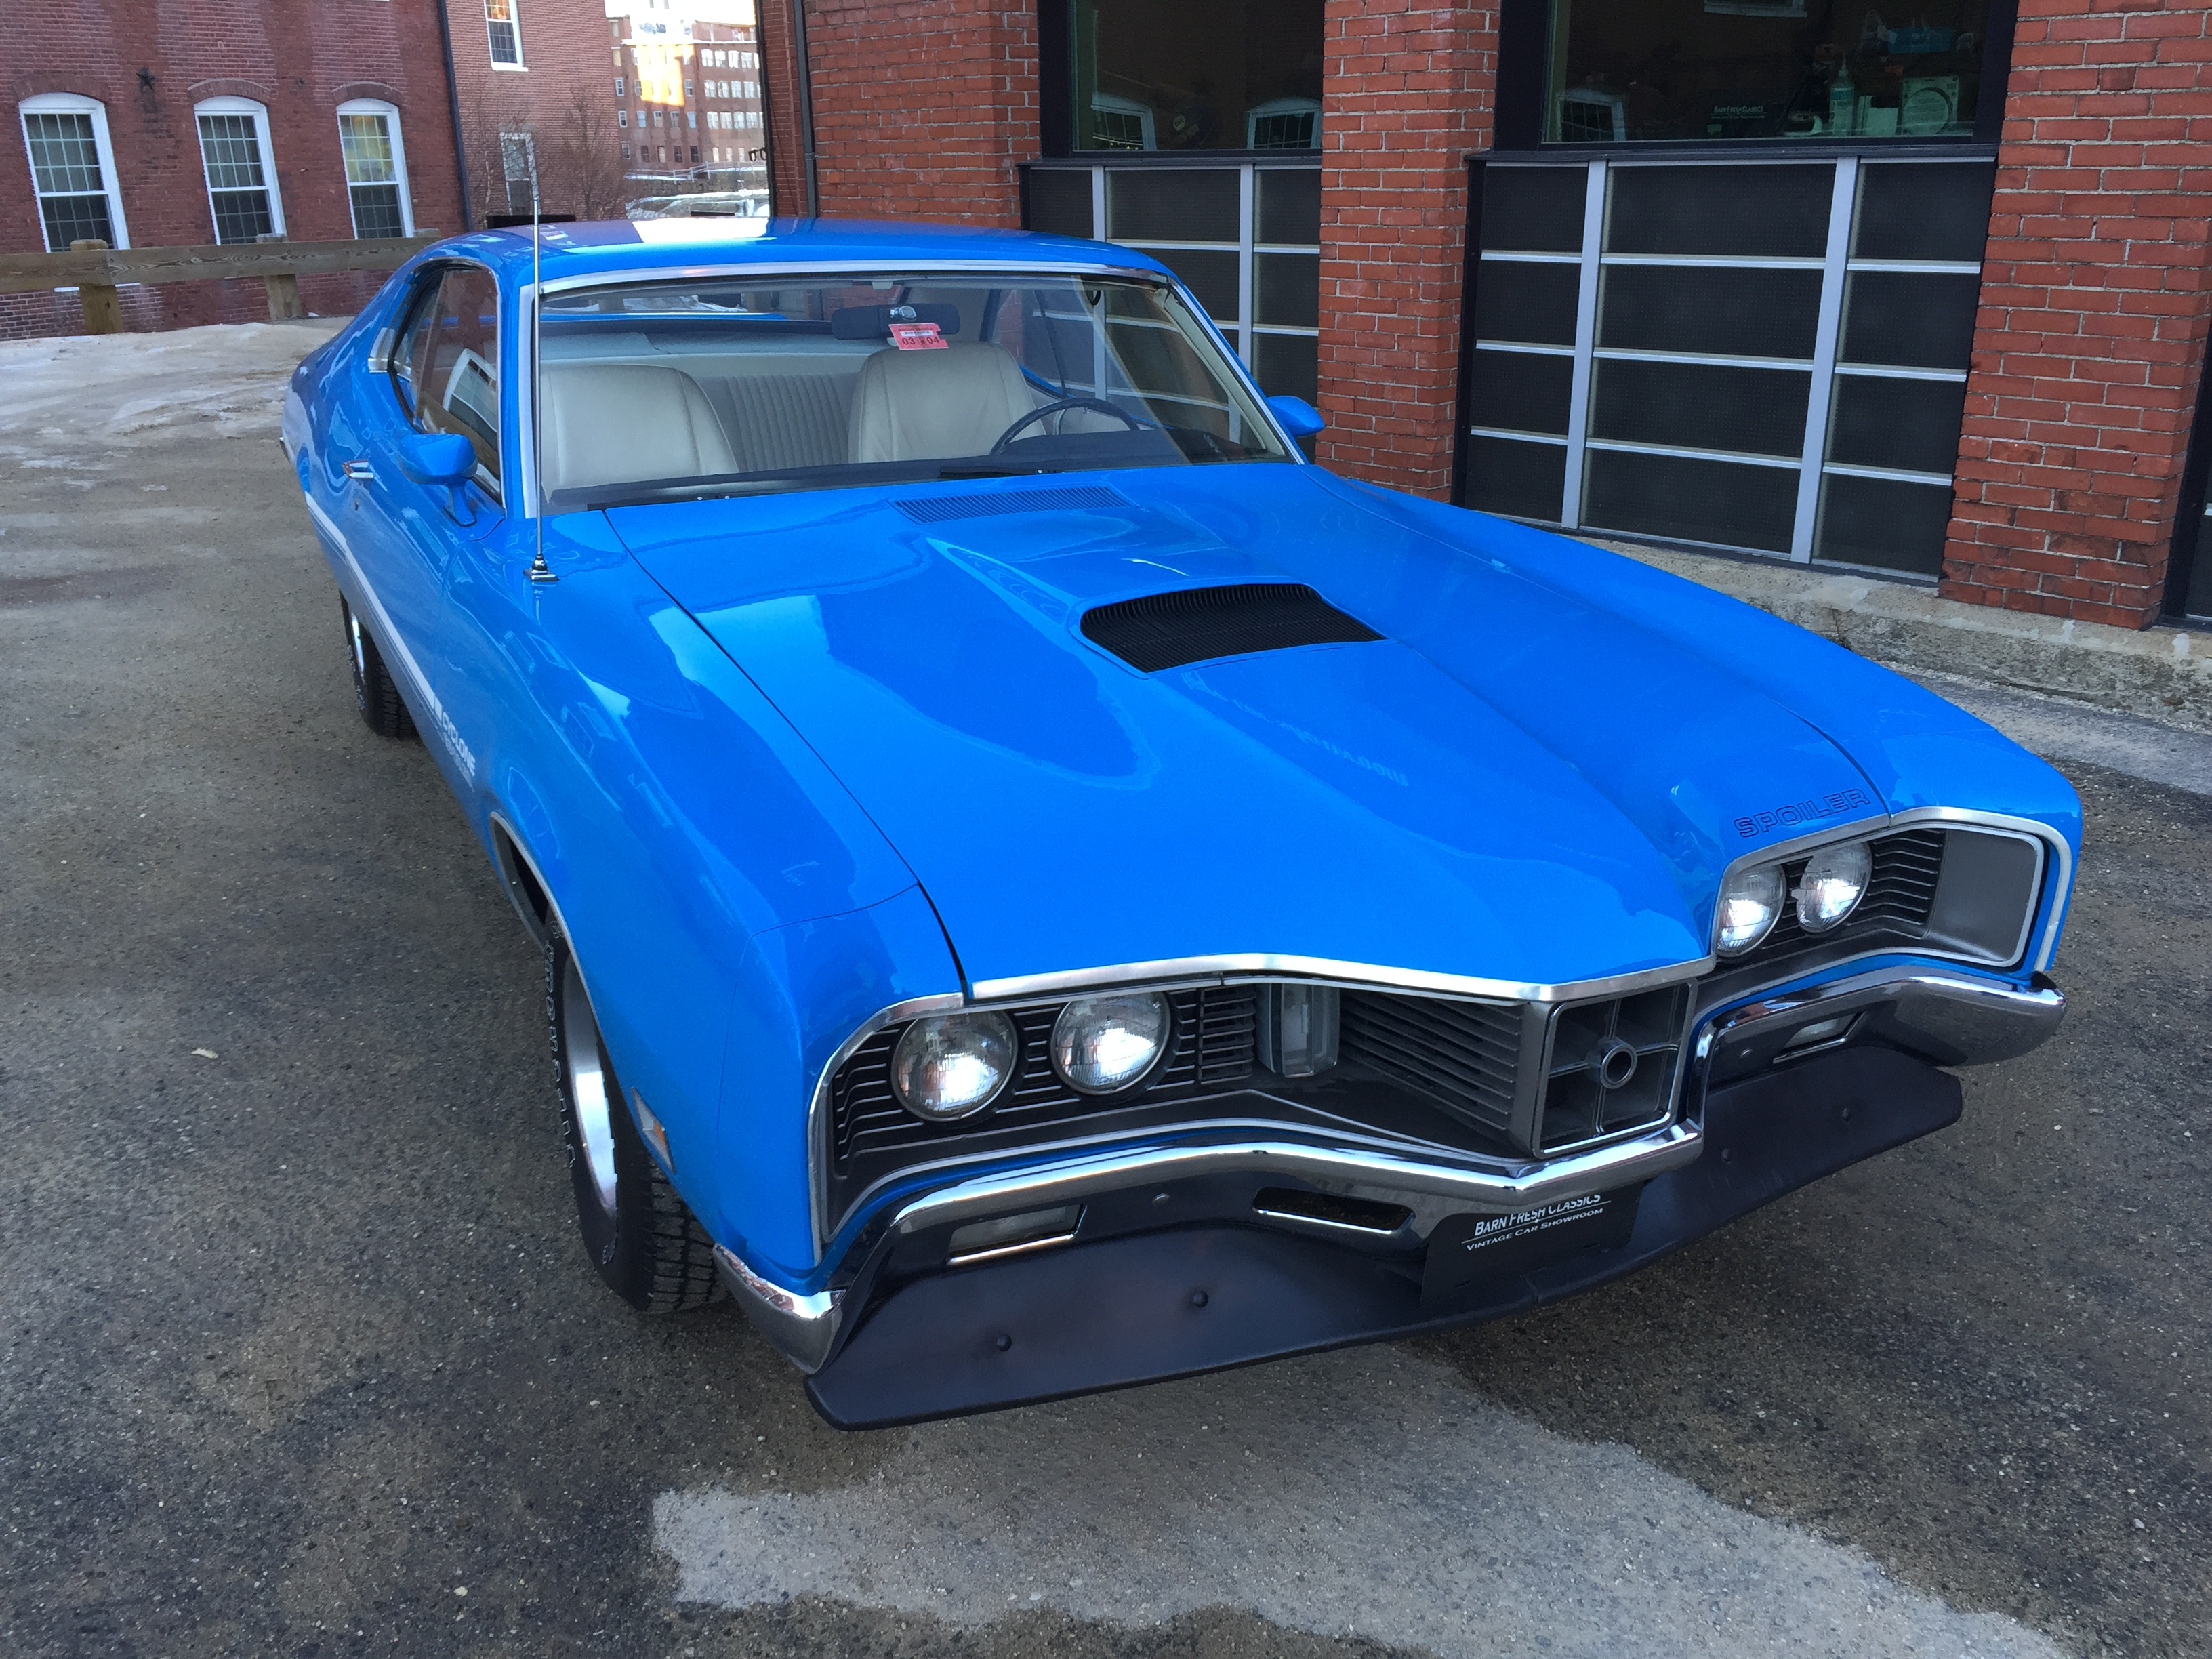 1970 Mercury Cyclone Spoiler 429 Cobra Jet Barn Fresh